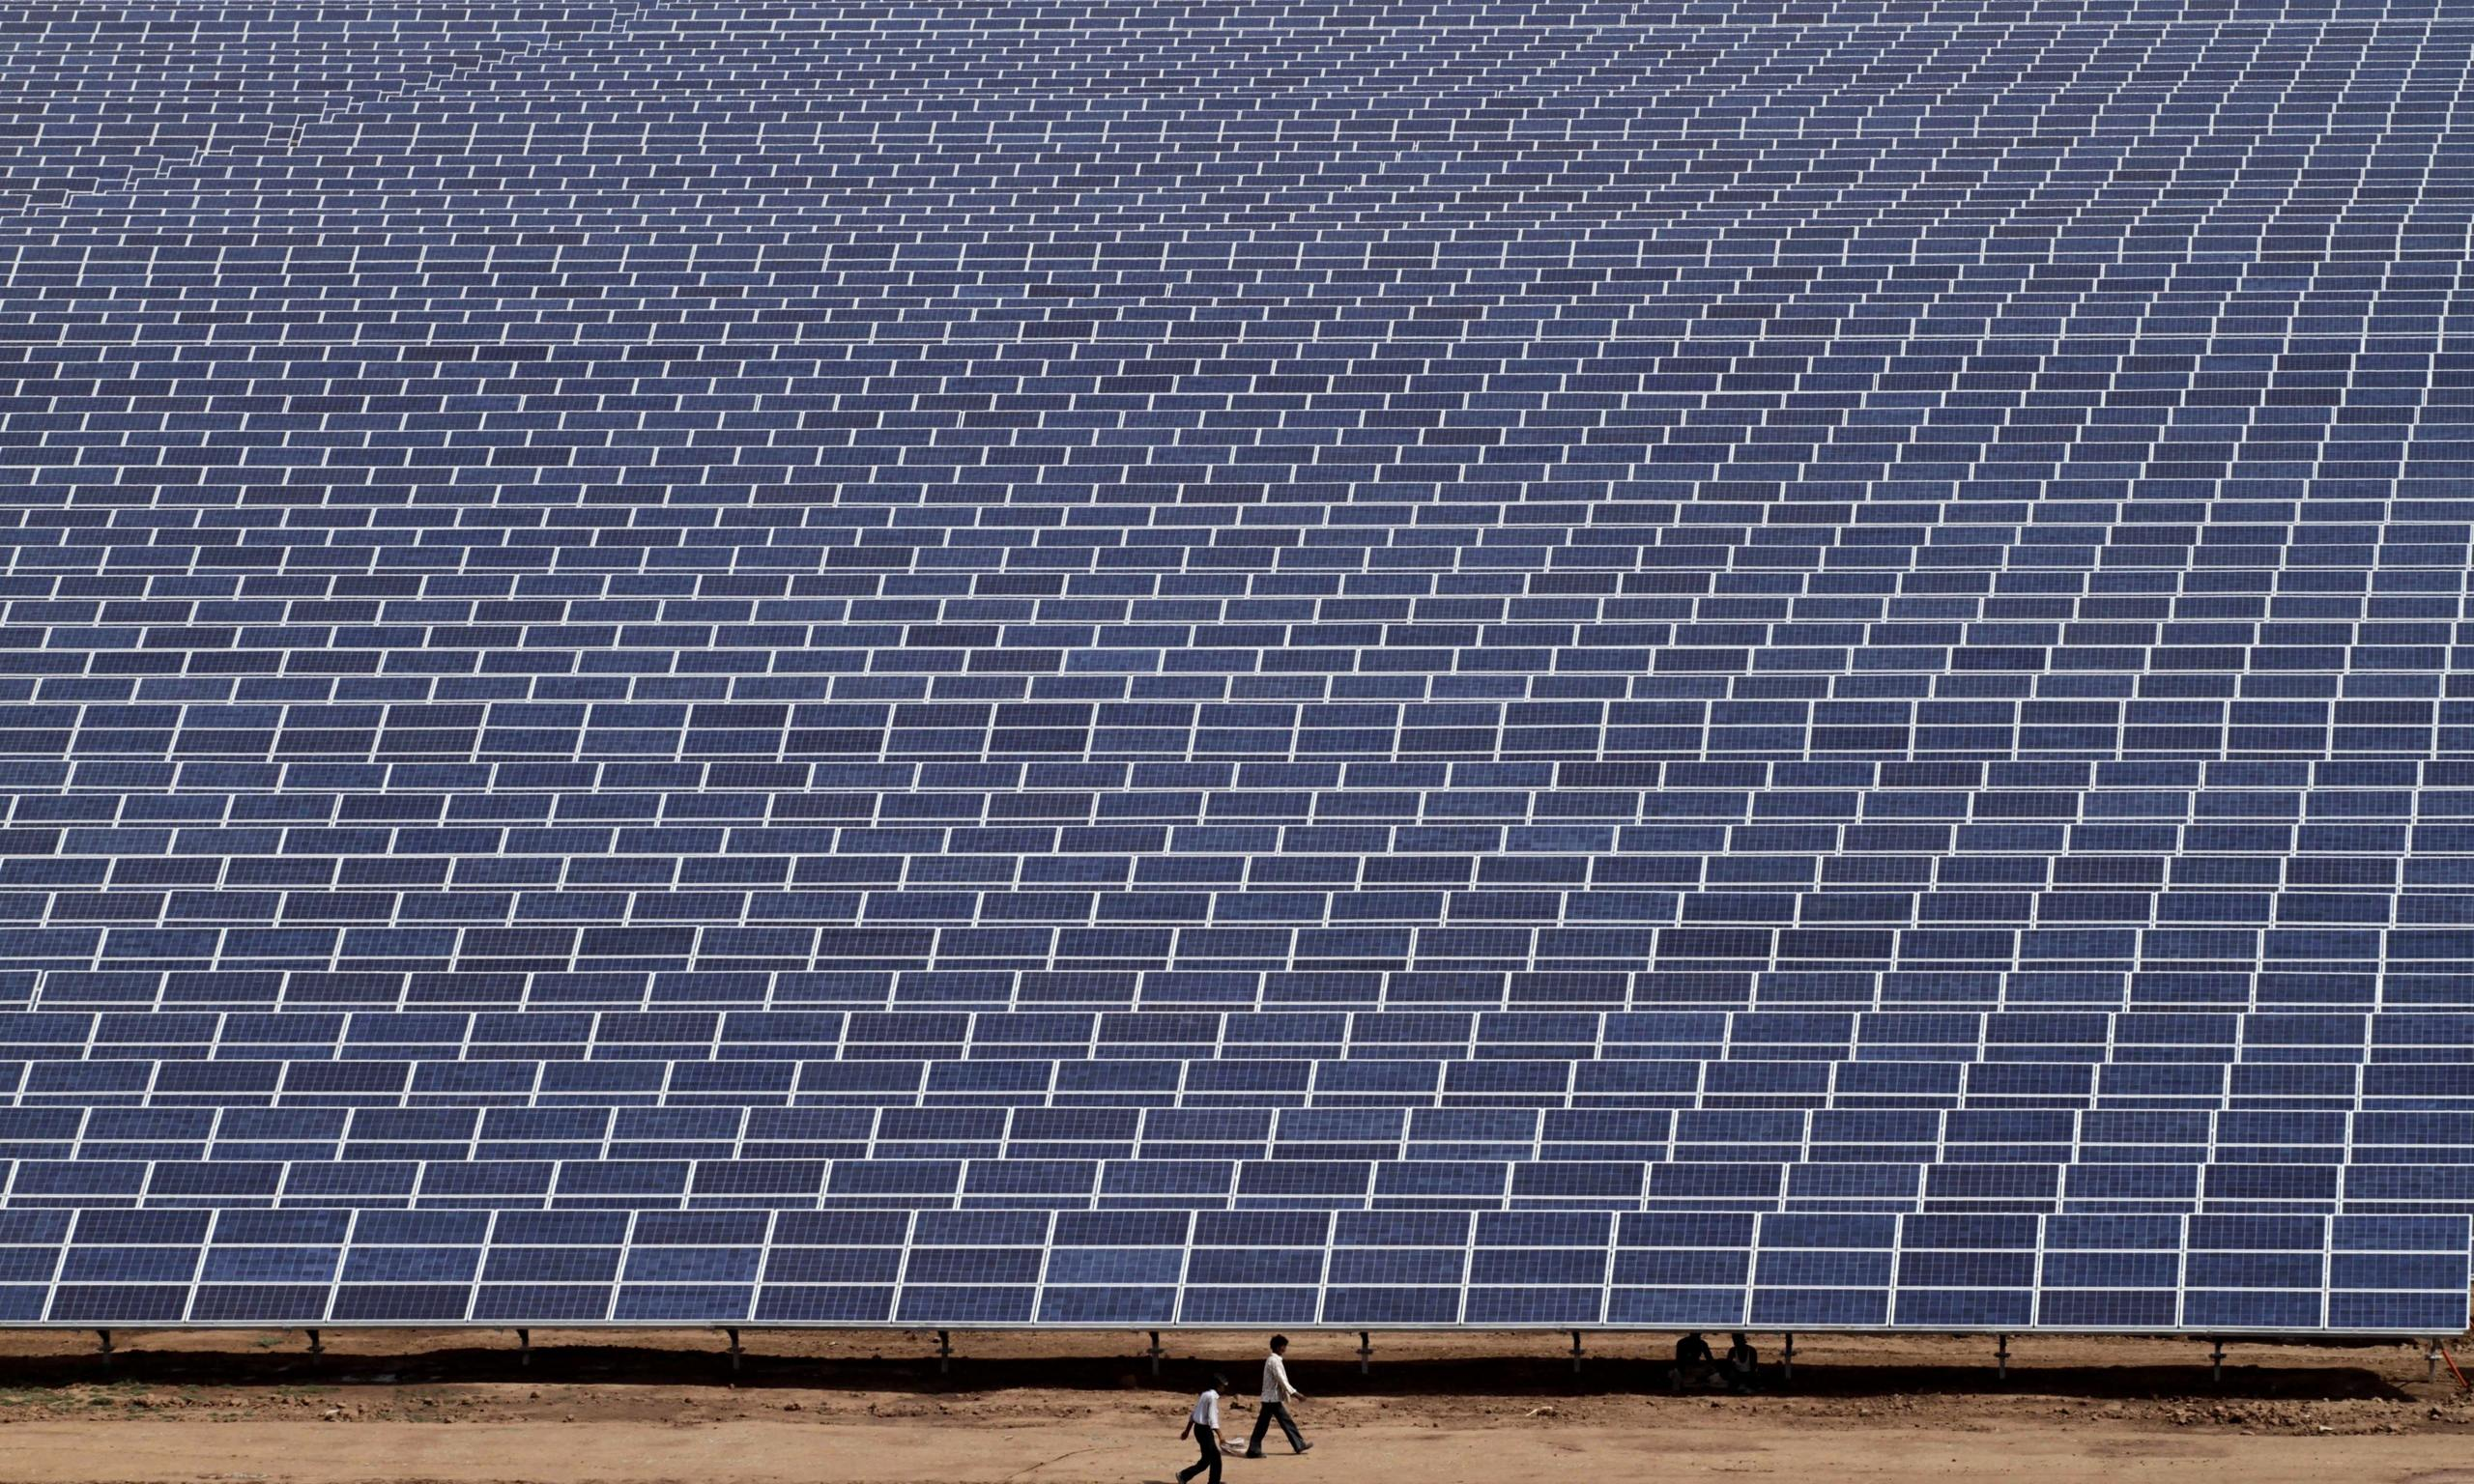 Solar is booming but solar parks could have unintended climate consequences